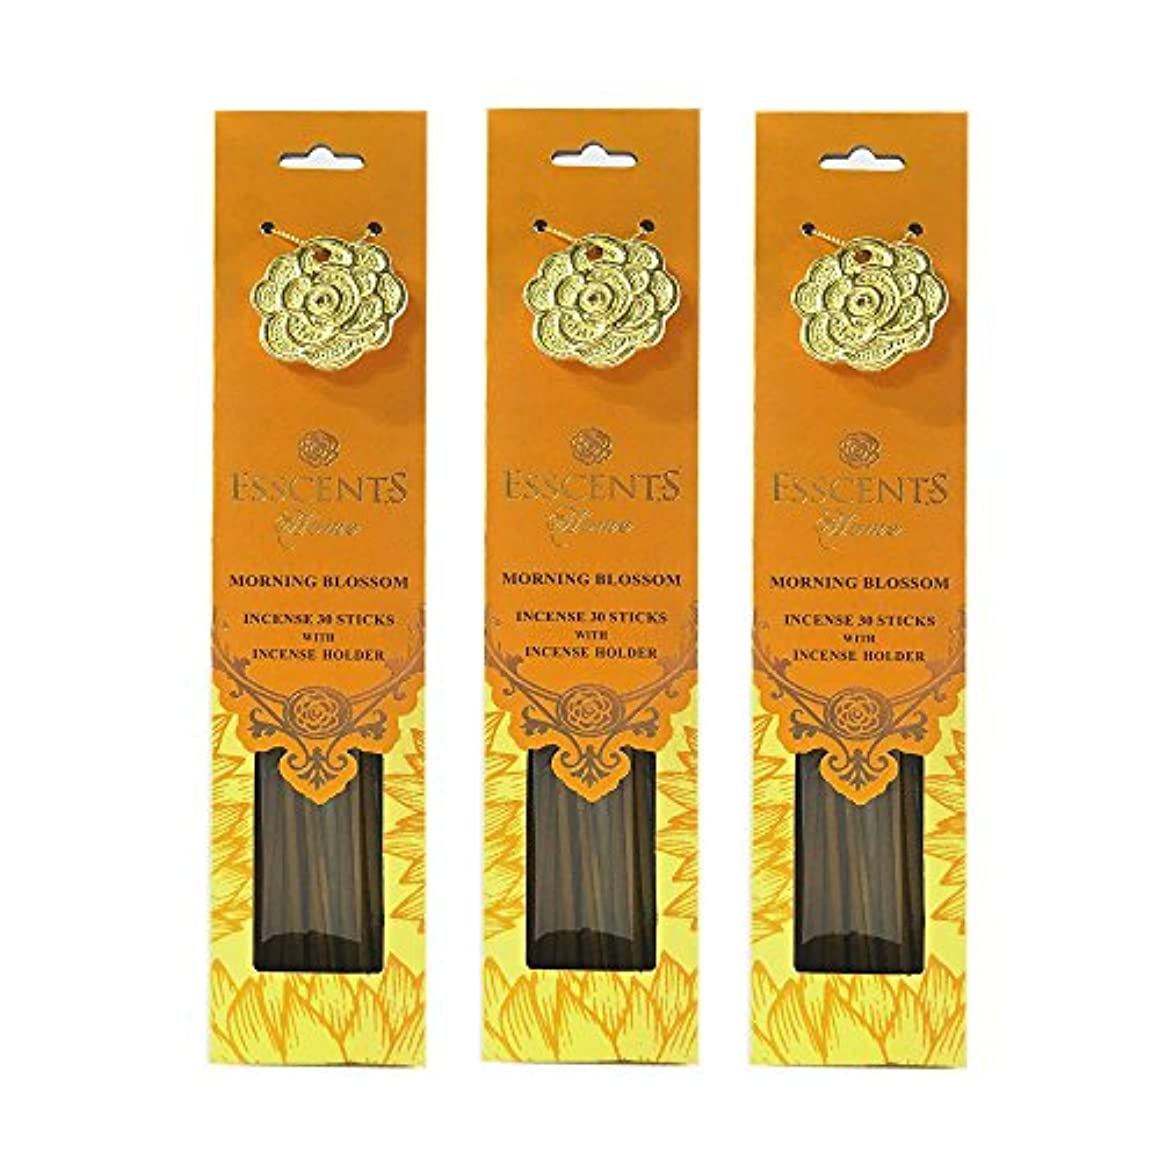 怪しい花火消毒剤Esscentsホーム90 SticksプレミアムIncense with 3メタルIncense Holders – Morning Blossom